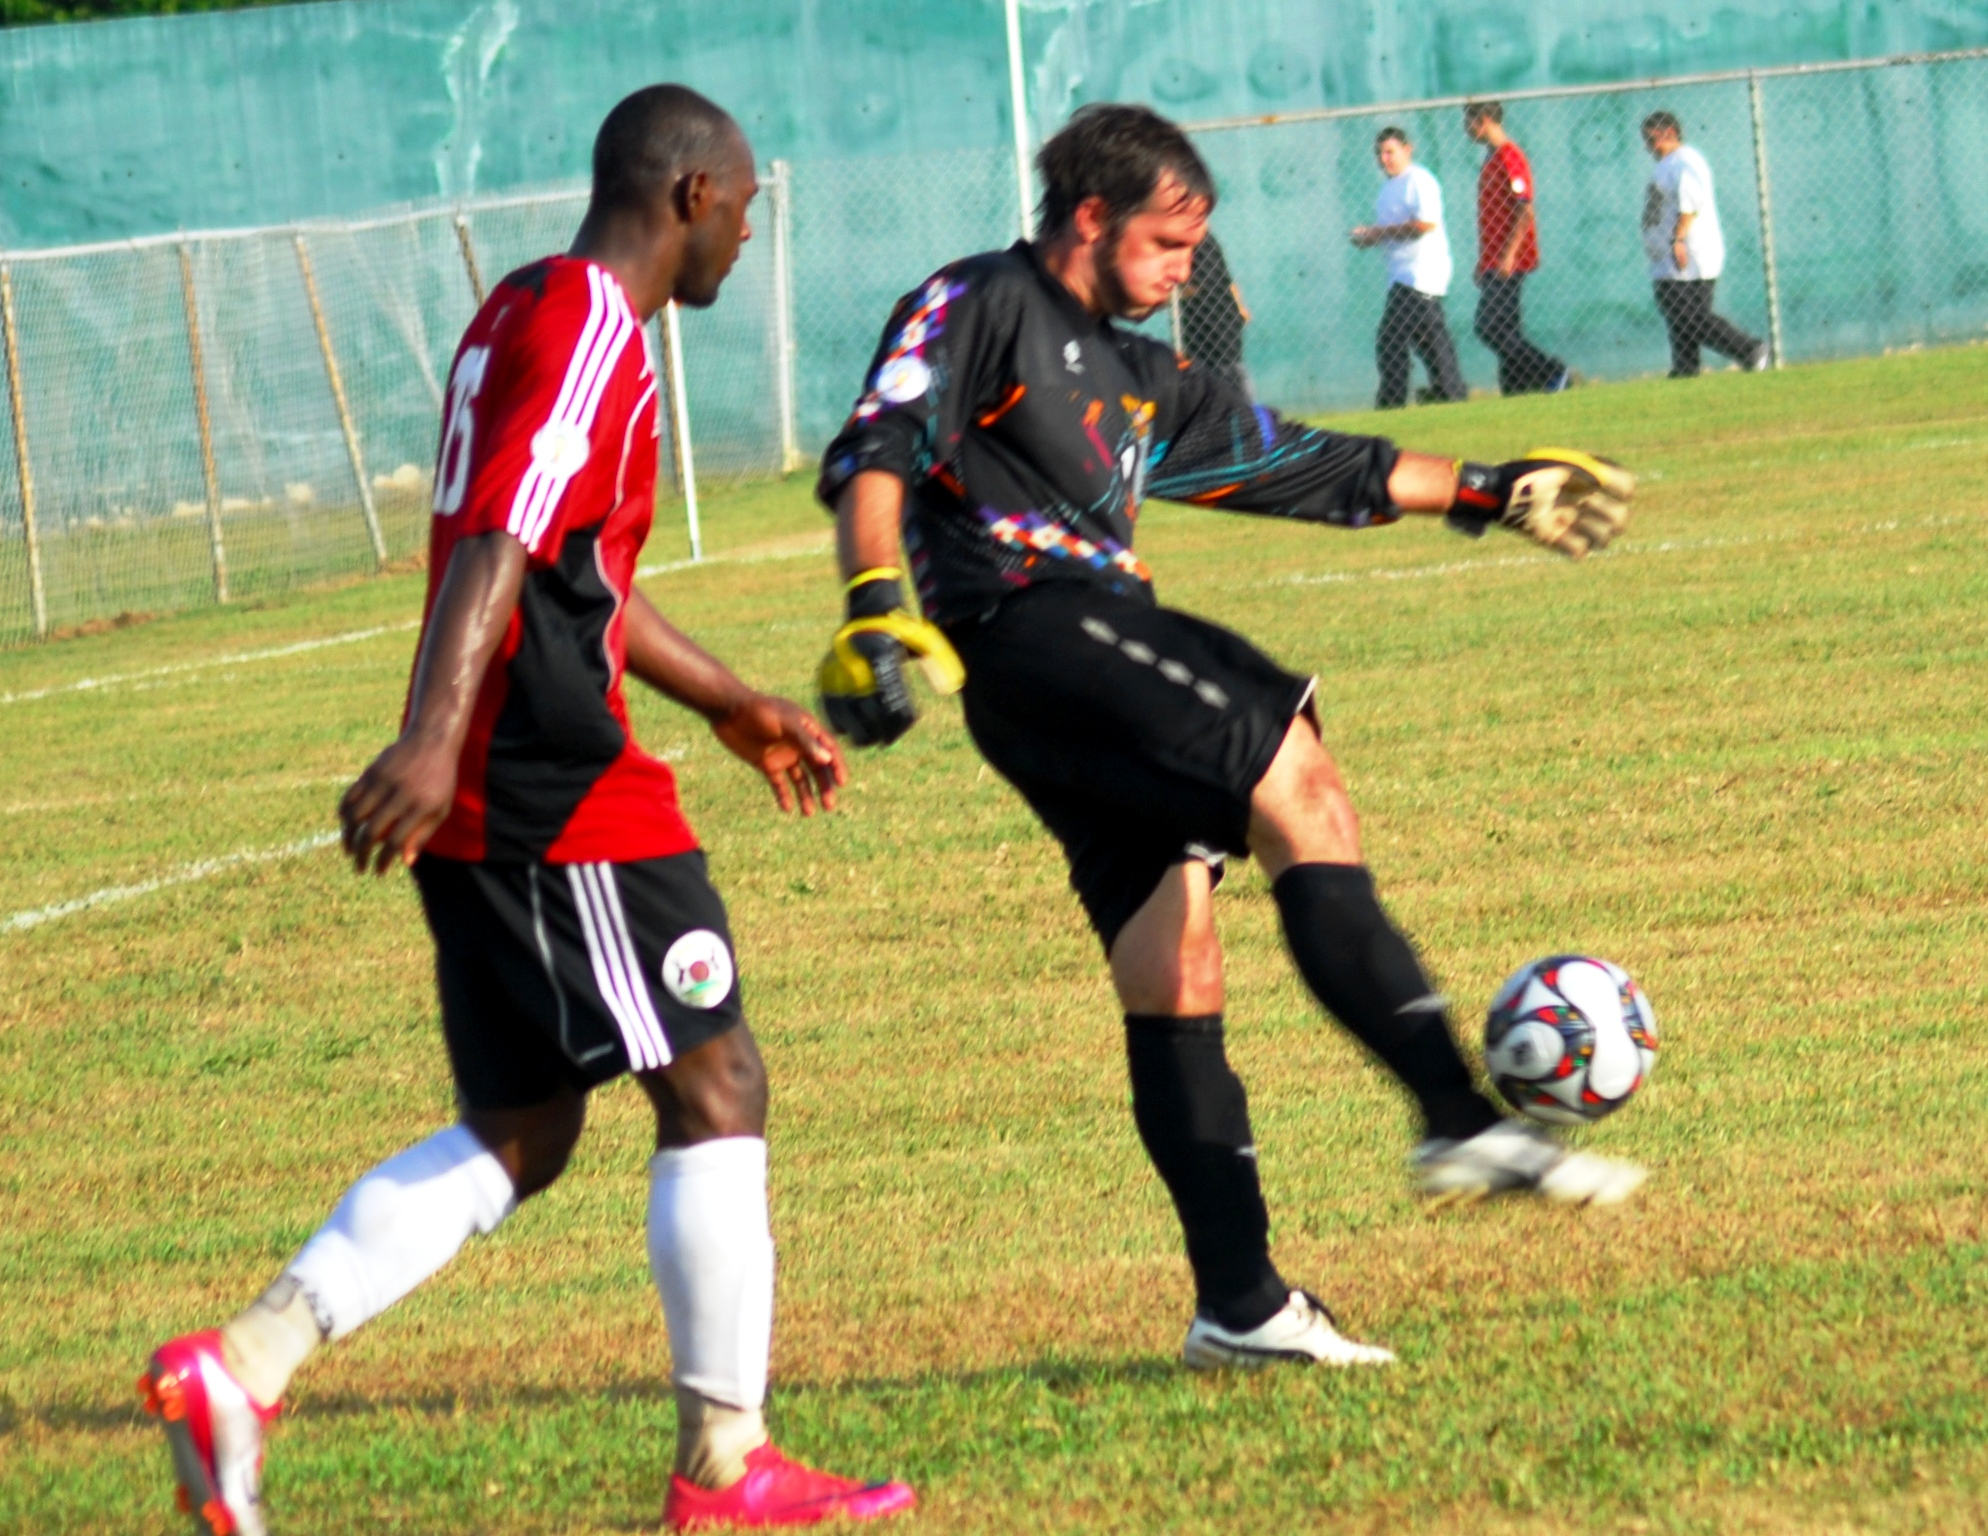 V.I. goalkeeper Dillon Pieffer (right) being shadowed by Antigua and Barbuda's Peter Byers.